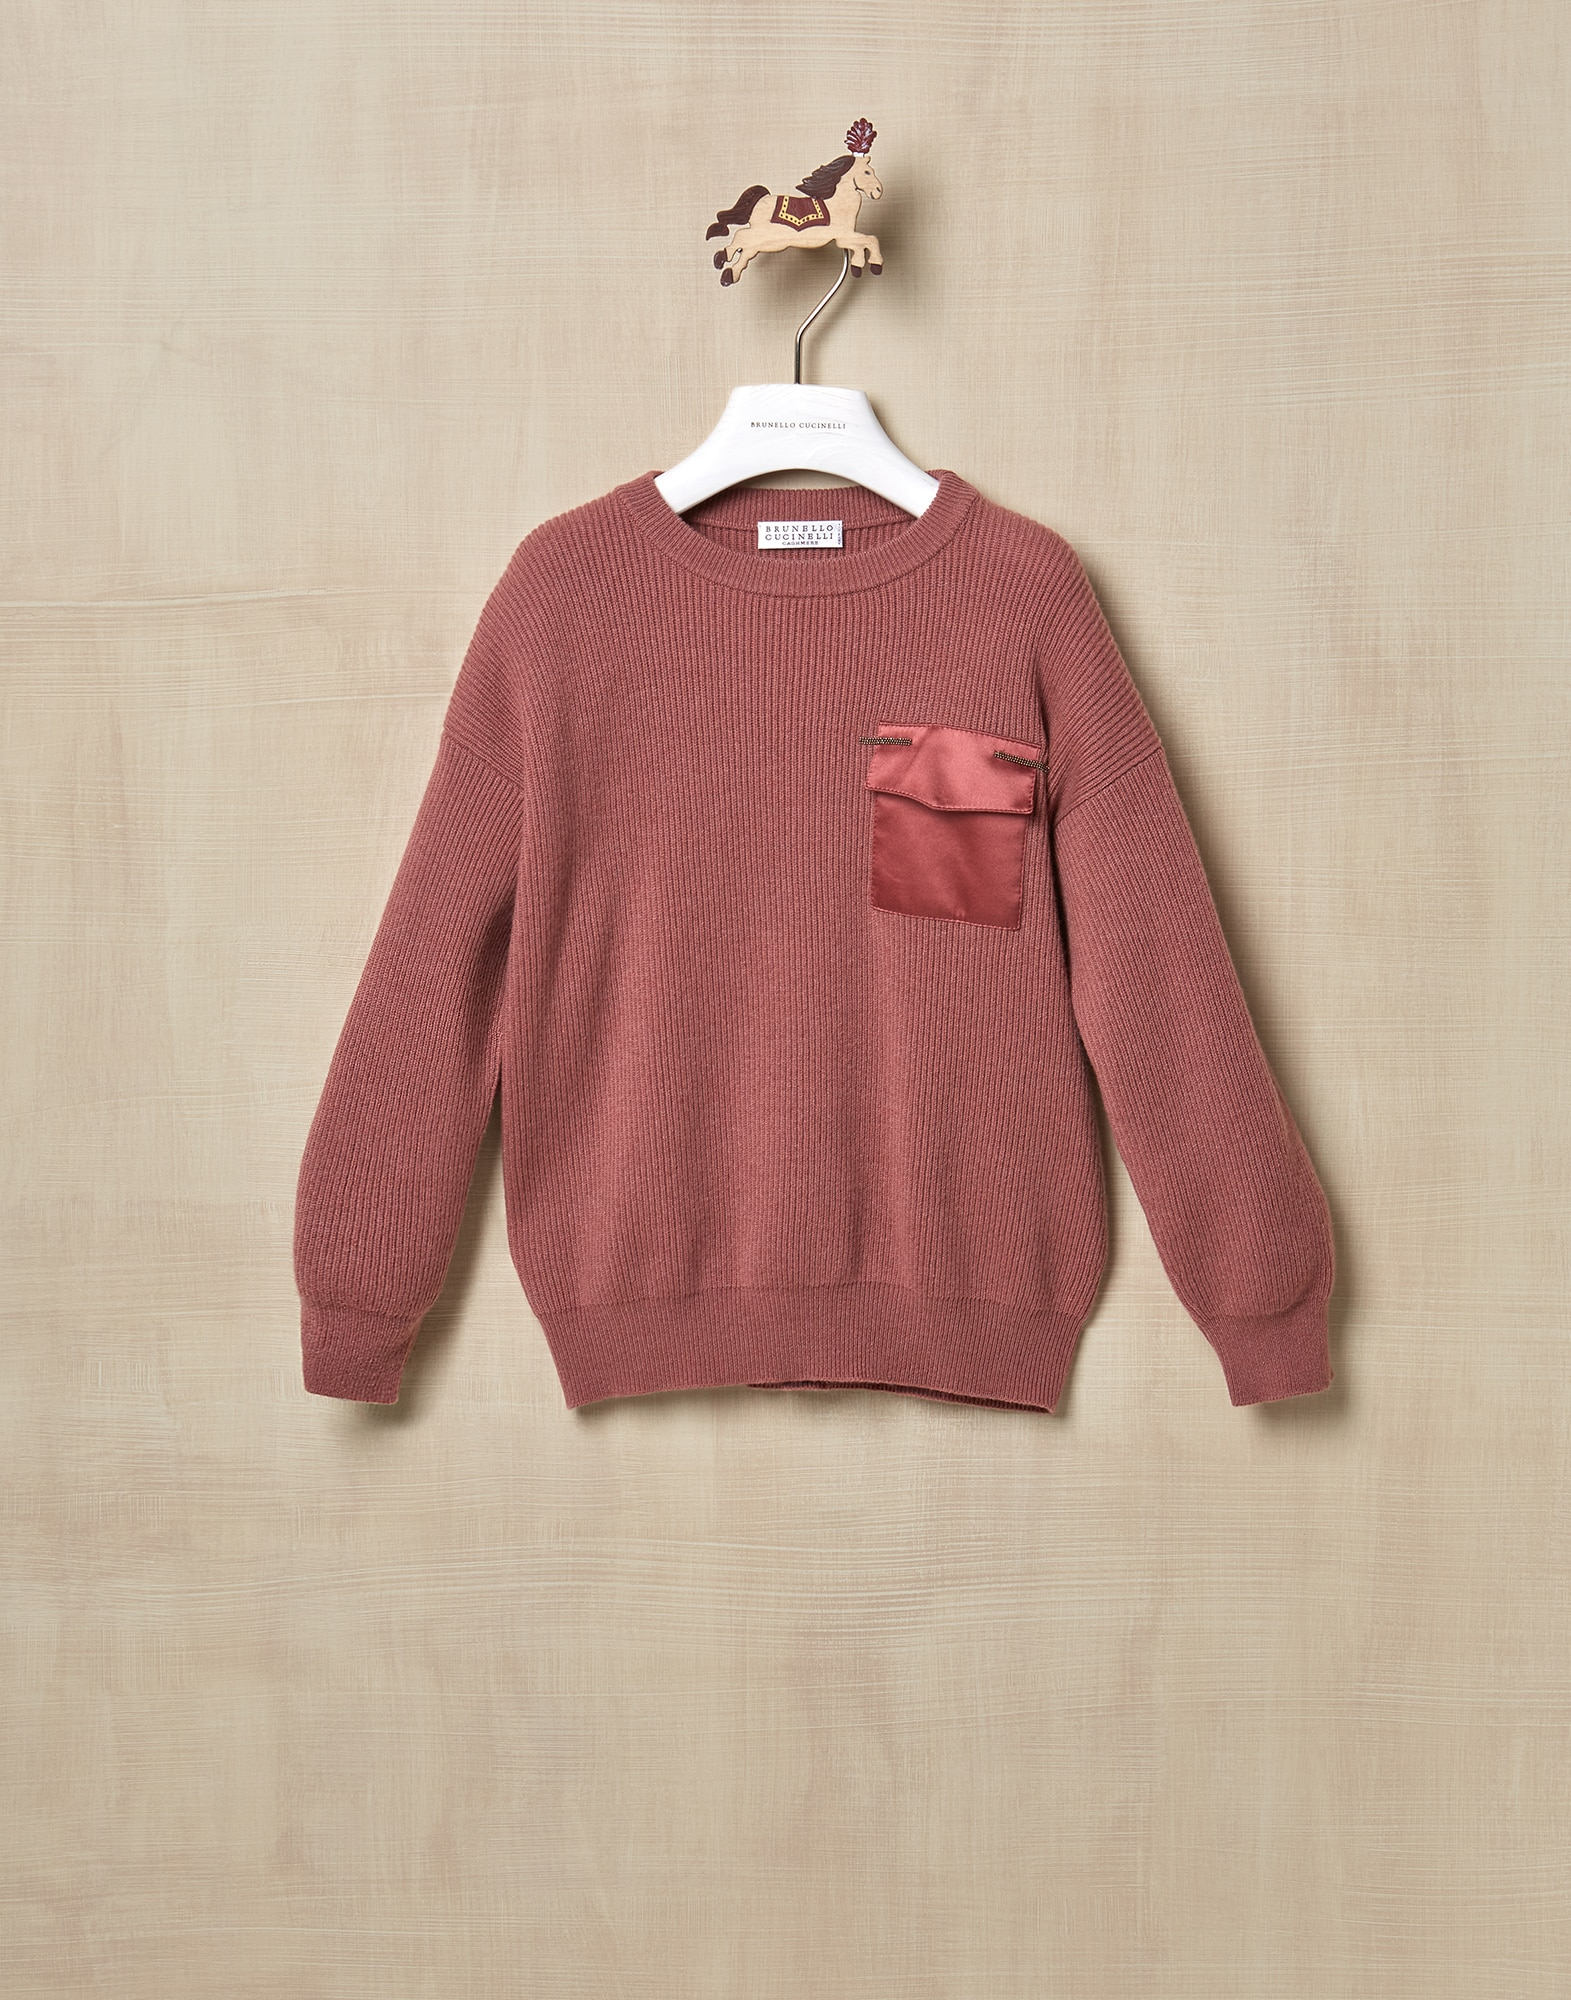 Crewneck Sweater - Front view